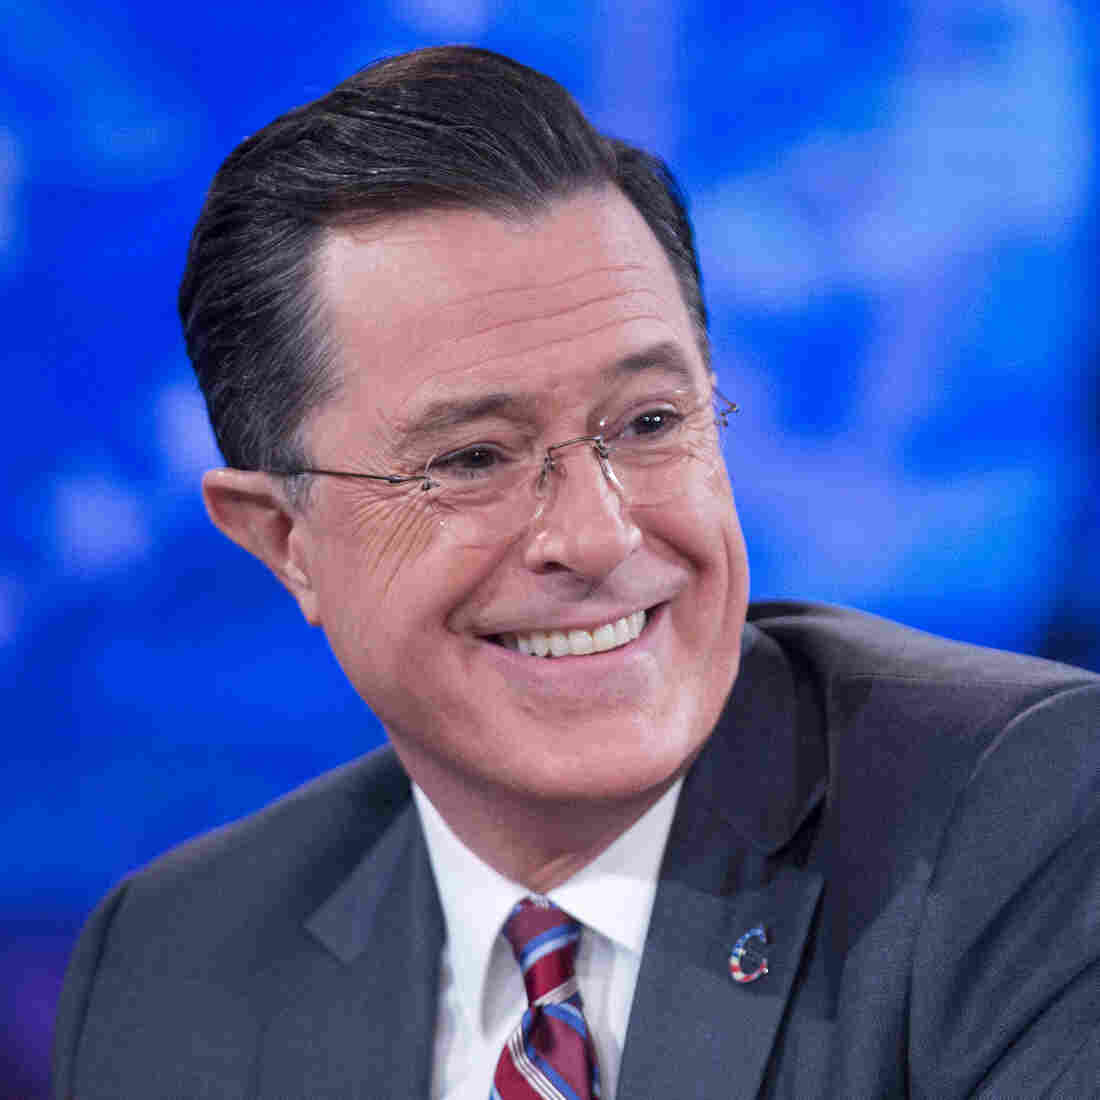 Stephen Colbert will host his final episode of The Colbert Report Thursday after nine years on air.